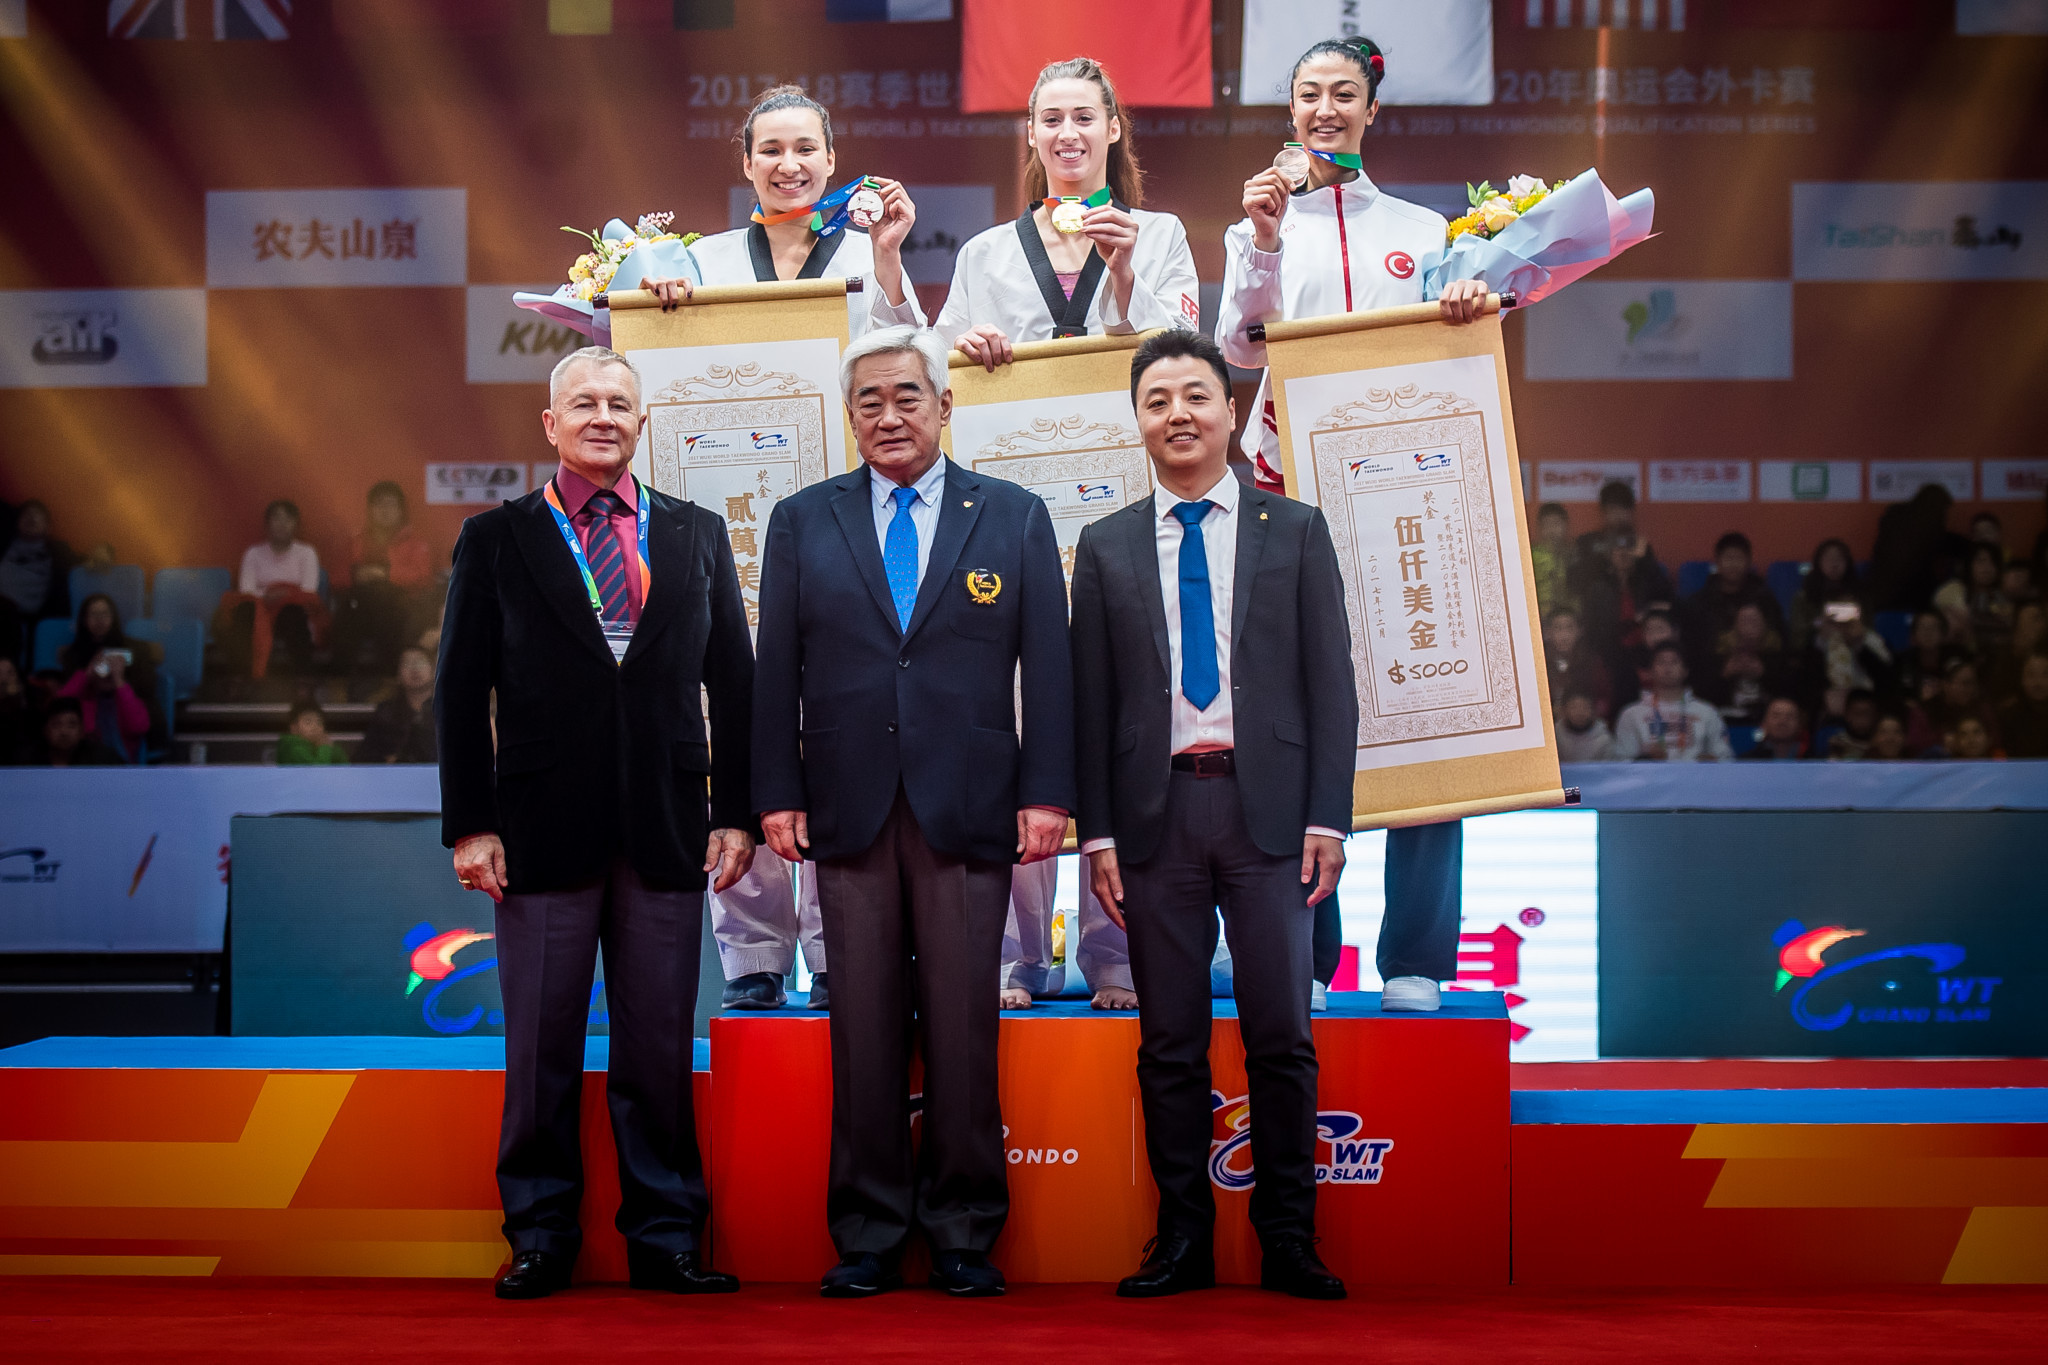 World Taekwondo President Chungwon Choue, front centre, presented the medallists with their prizes ©World Taekwondo